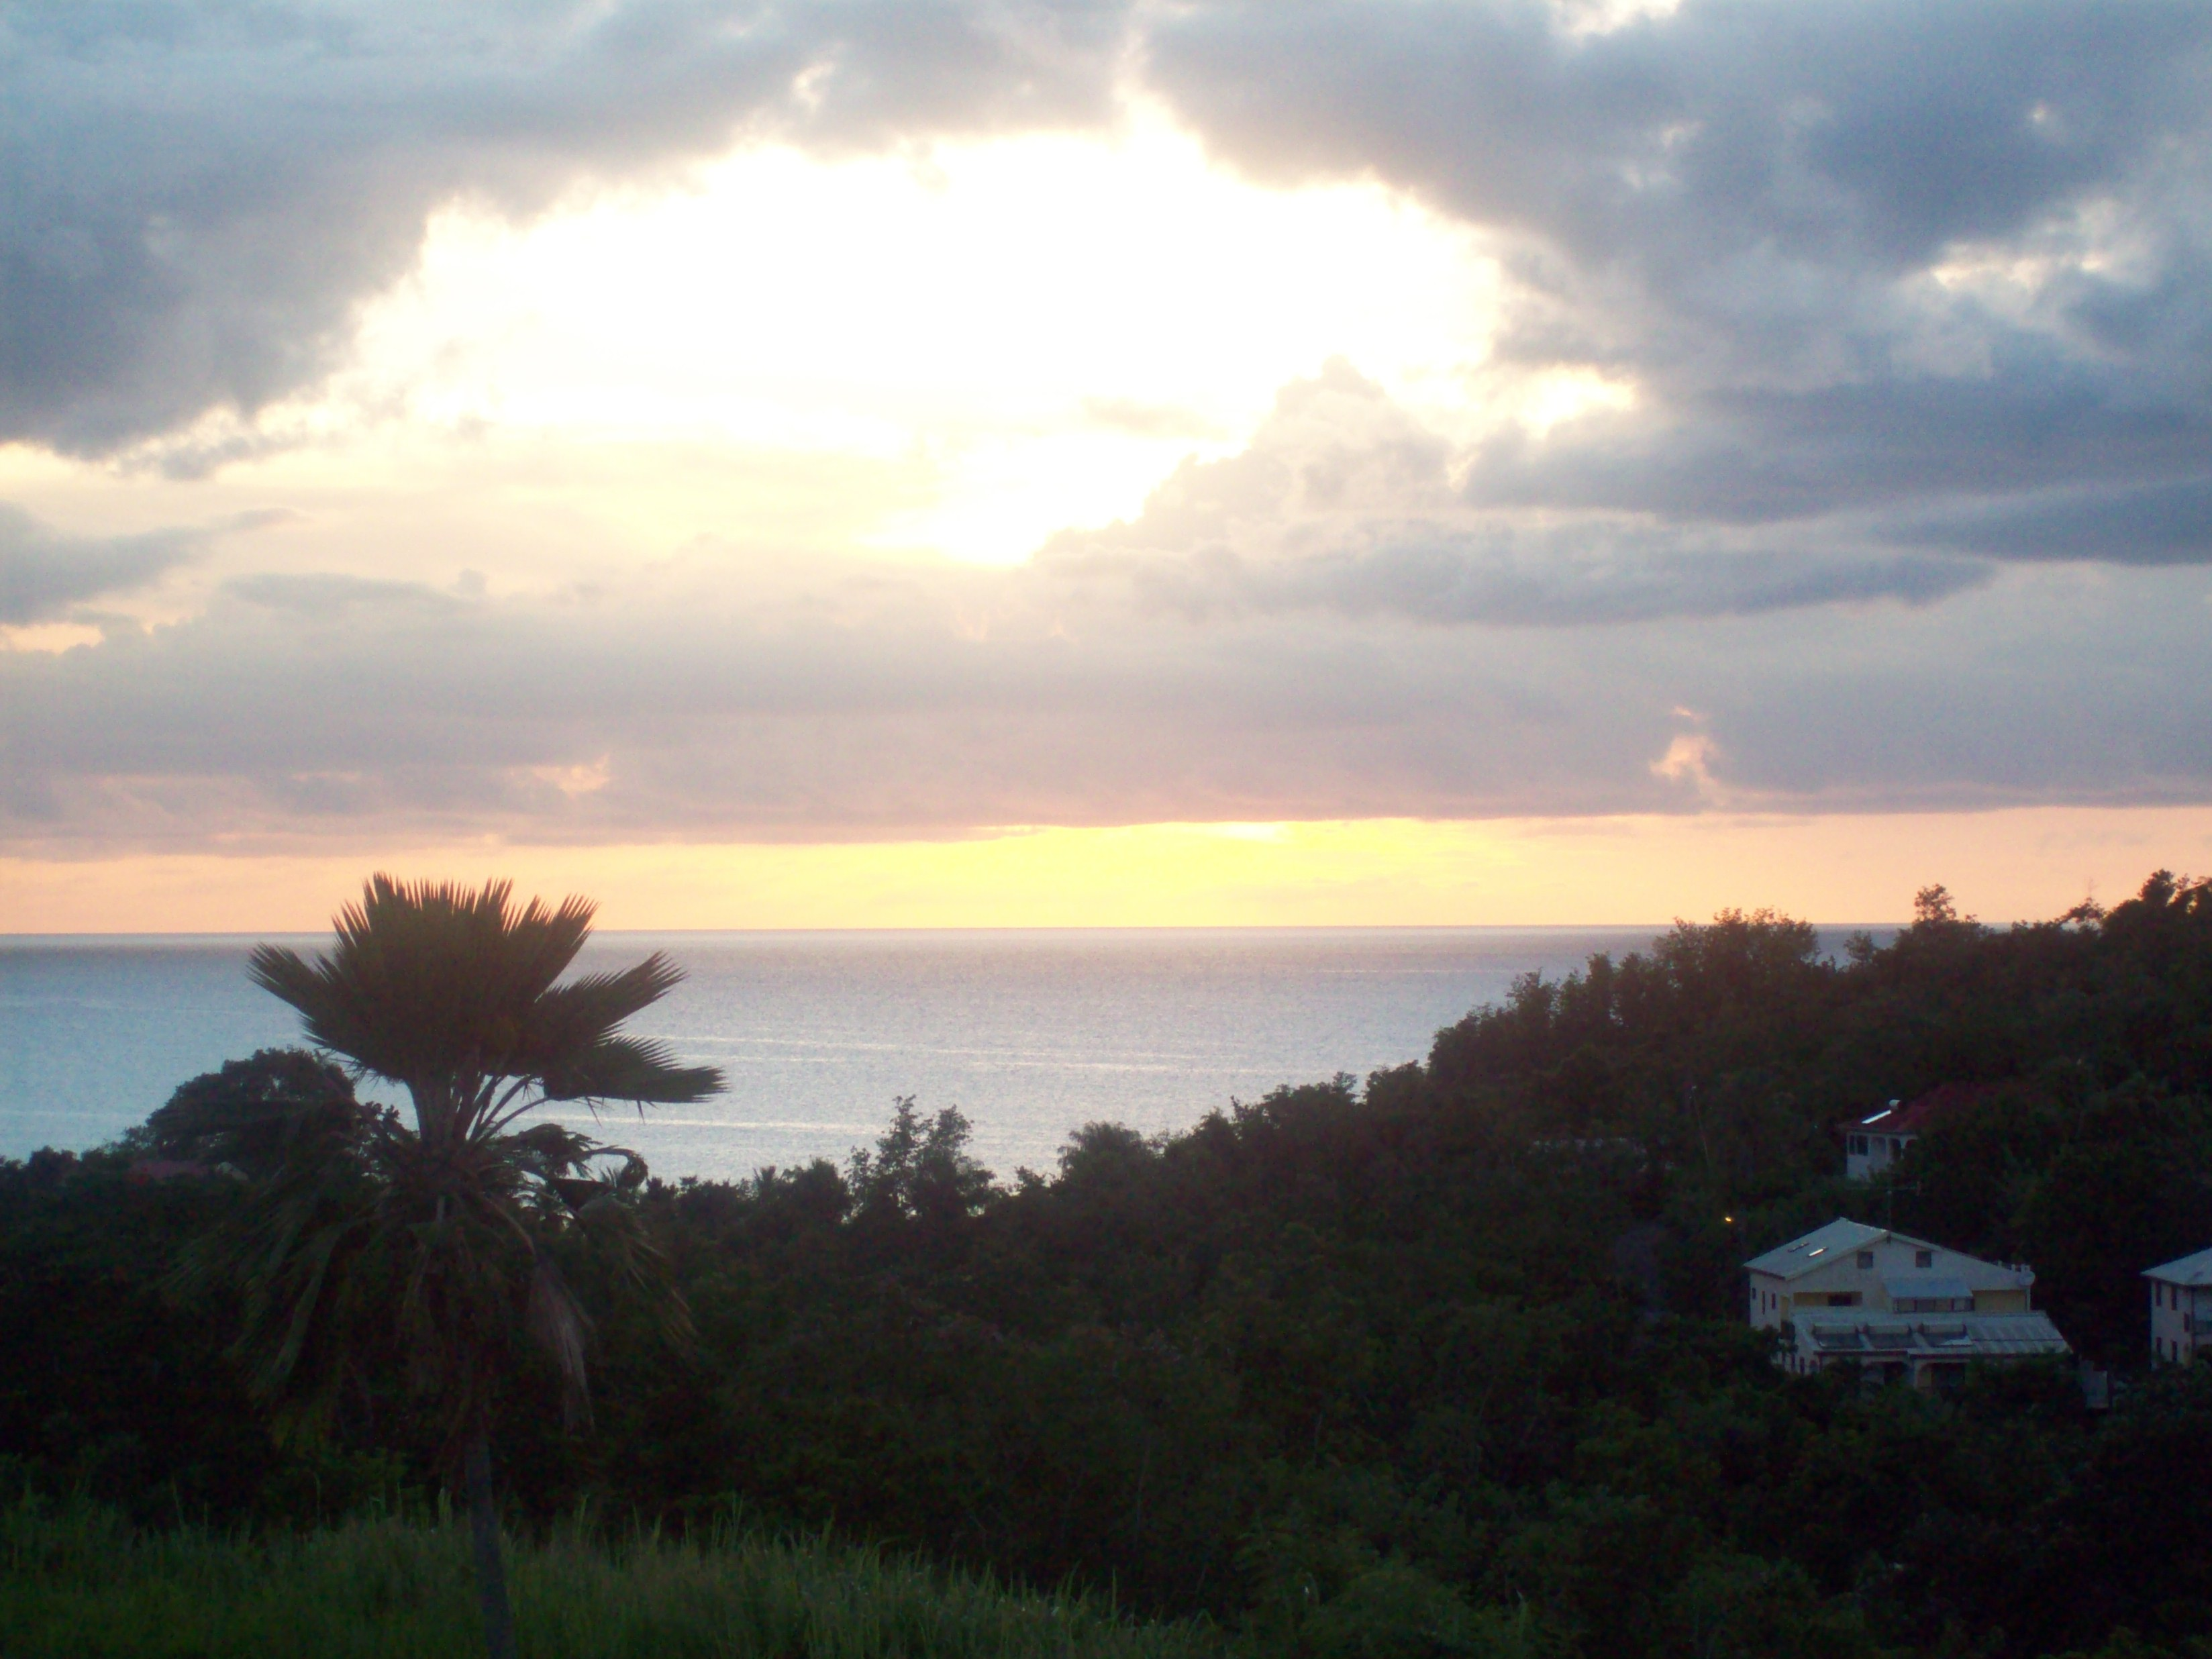 martinique-054.JPG